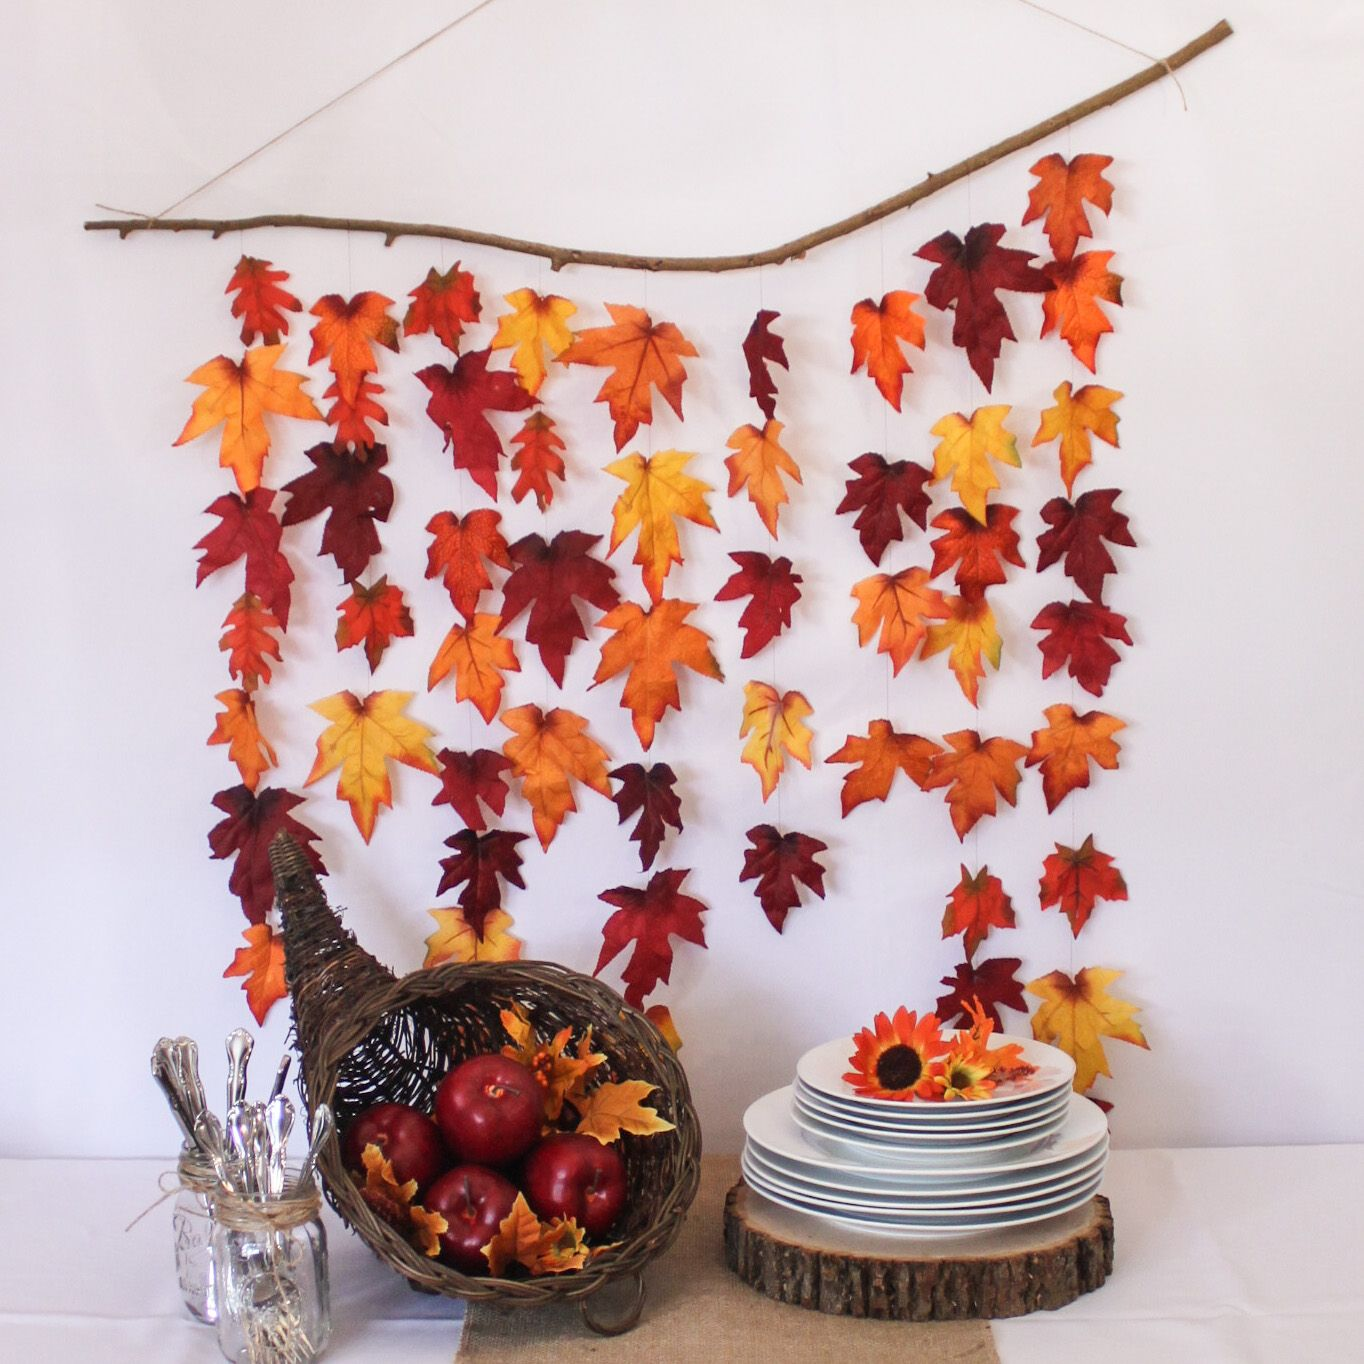 Diy rustic autumn leaf backdrop autumn fall decorations for Thanksgiving home decorations pinterest